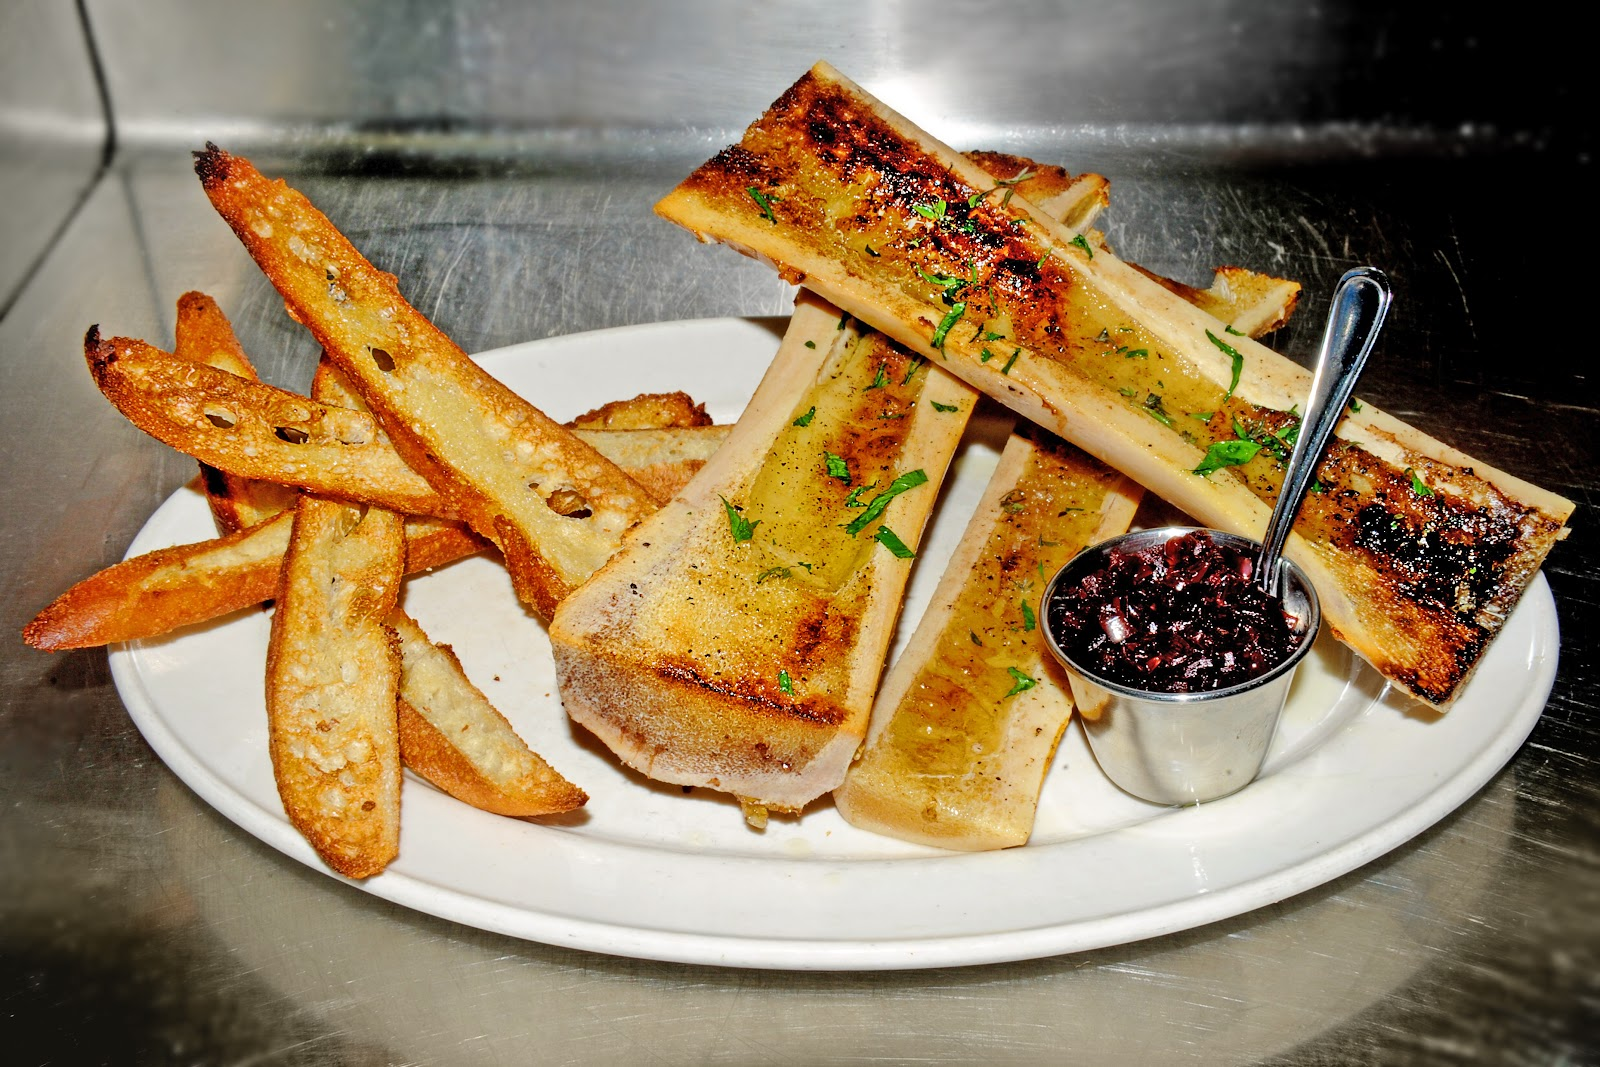 ... Tavern - Roasted Bone Marrow with baguette soldiers and shallot confit